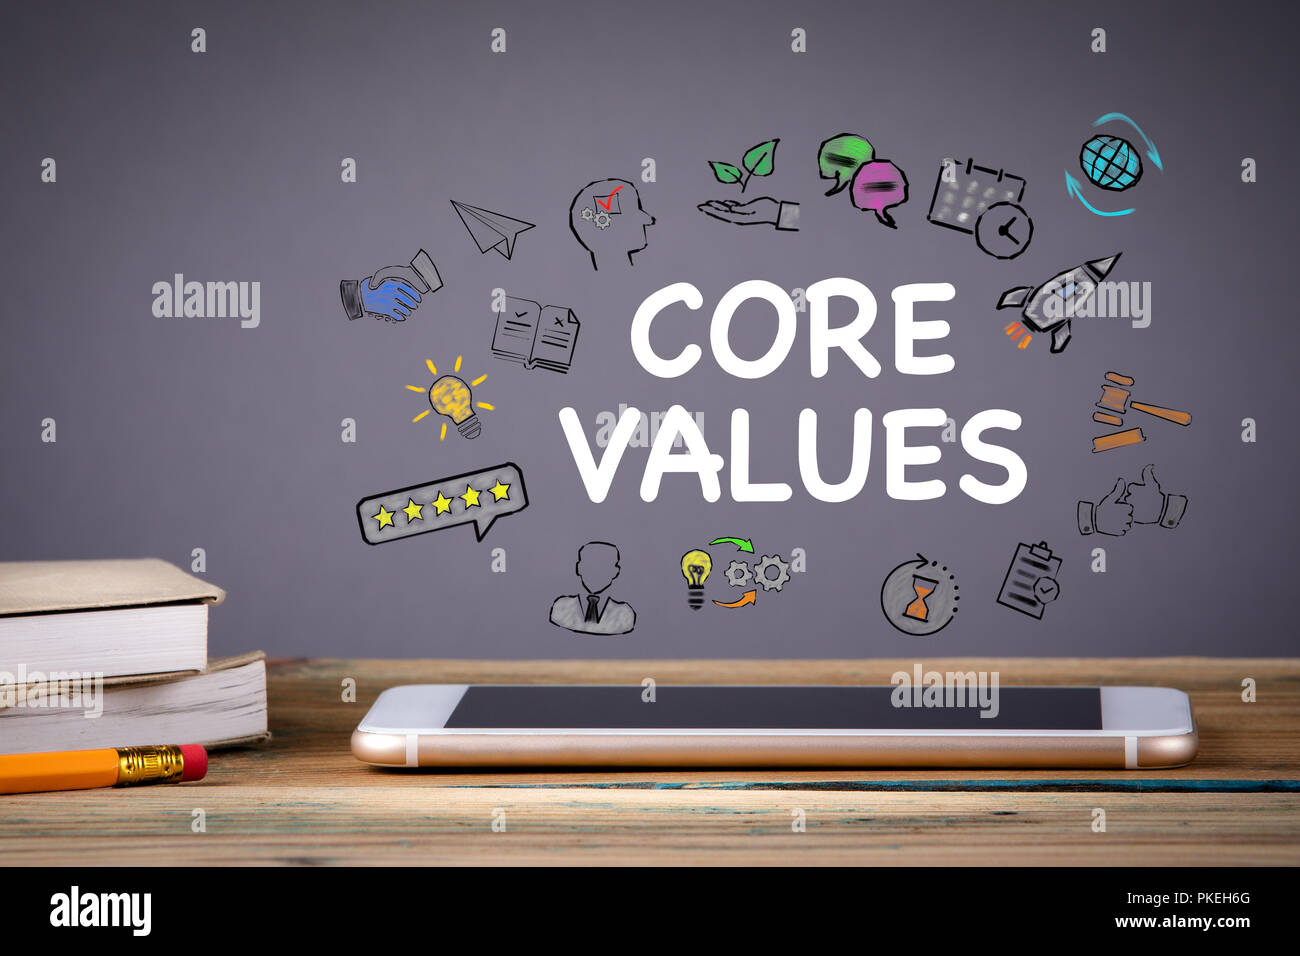 Core Values, Business and Technology concept - Stock Image